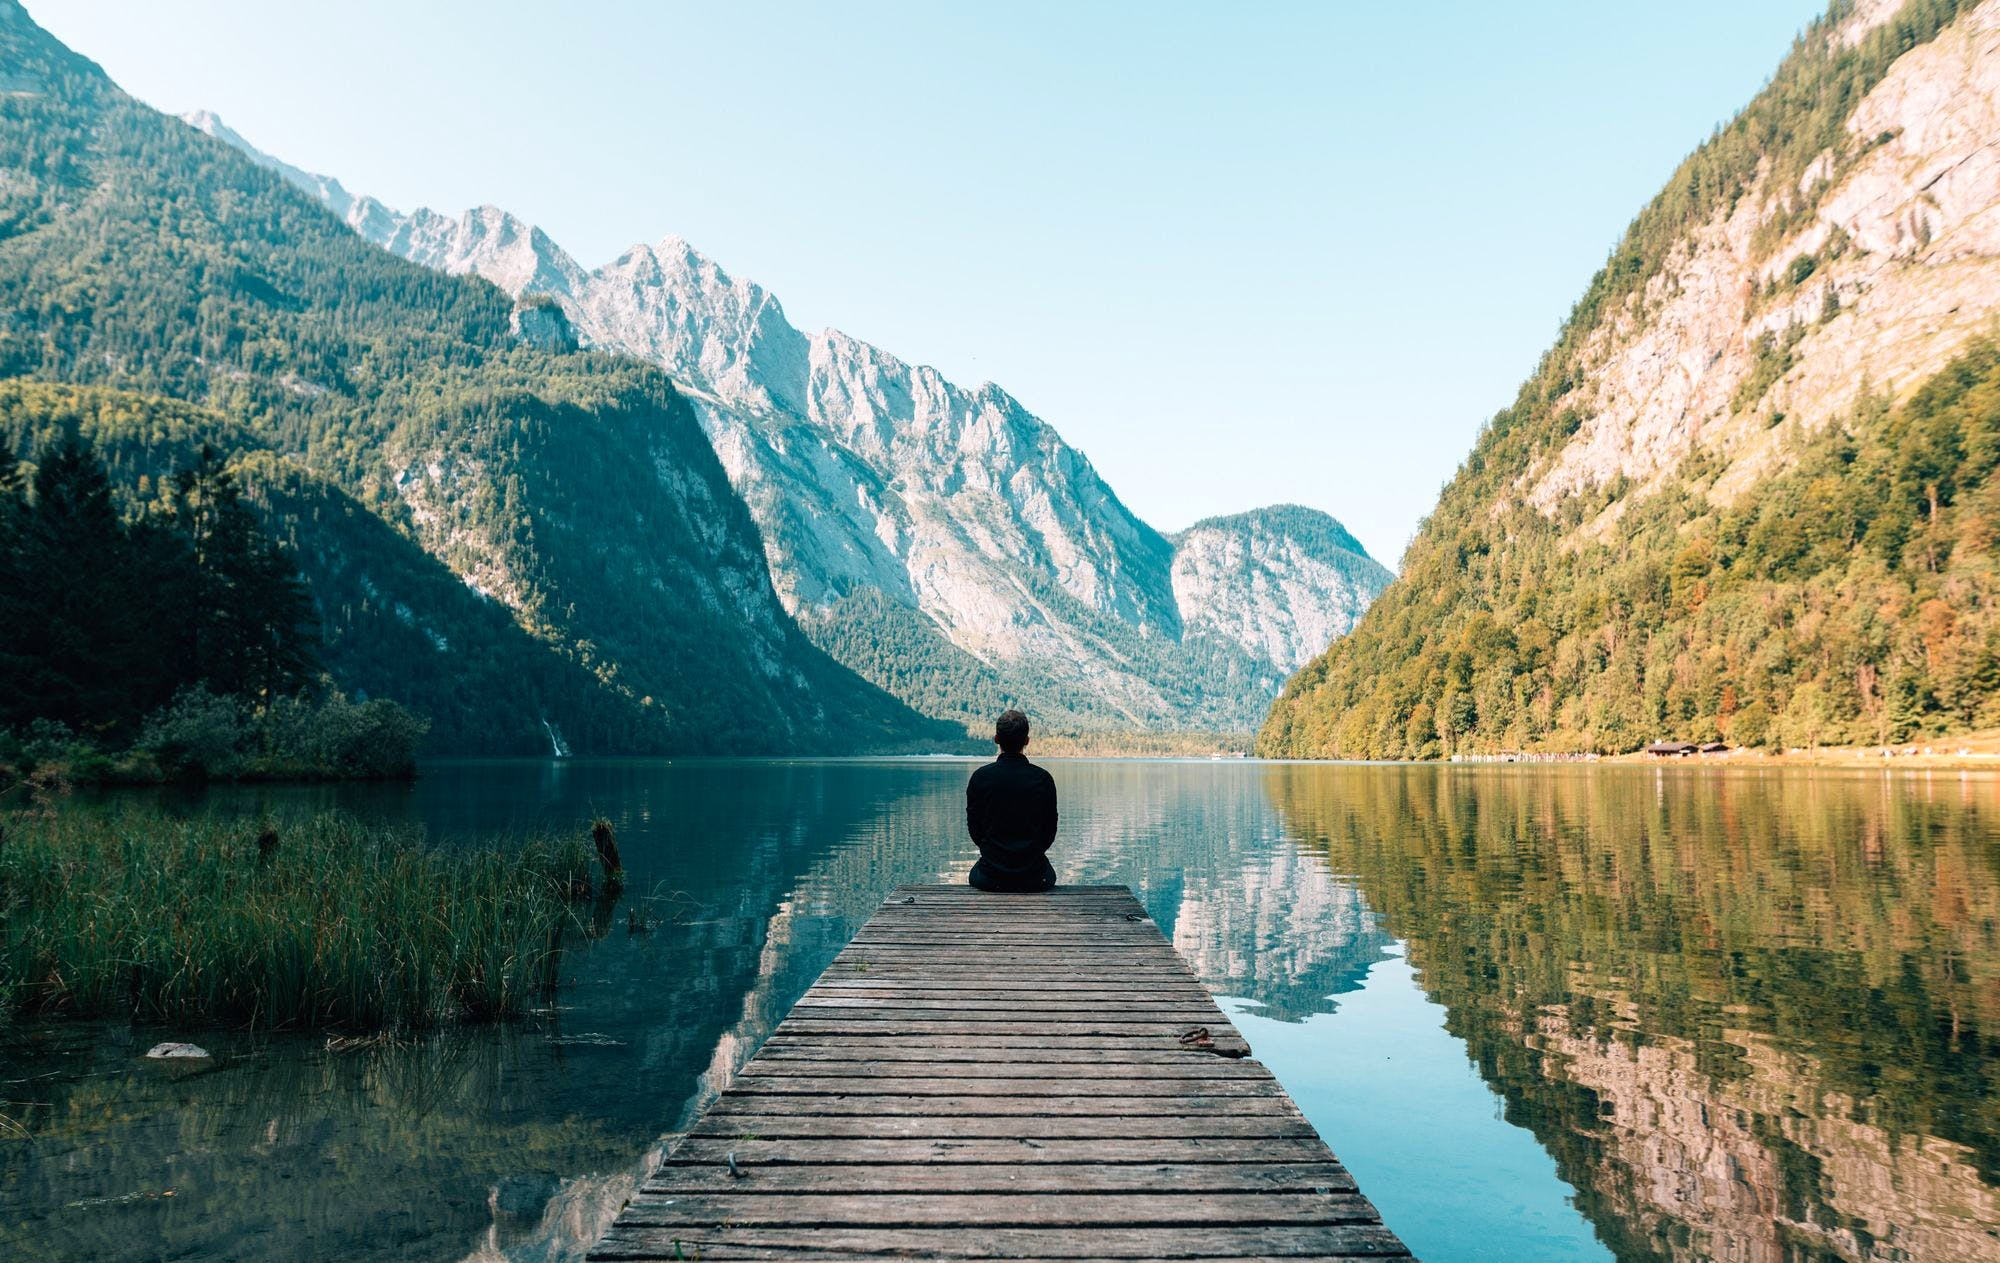 Try This Guided Meditation When You Want to Meditate But Need a Little Help Getting Started